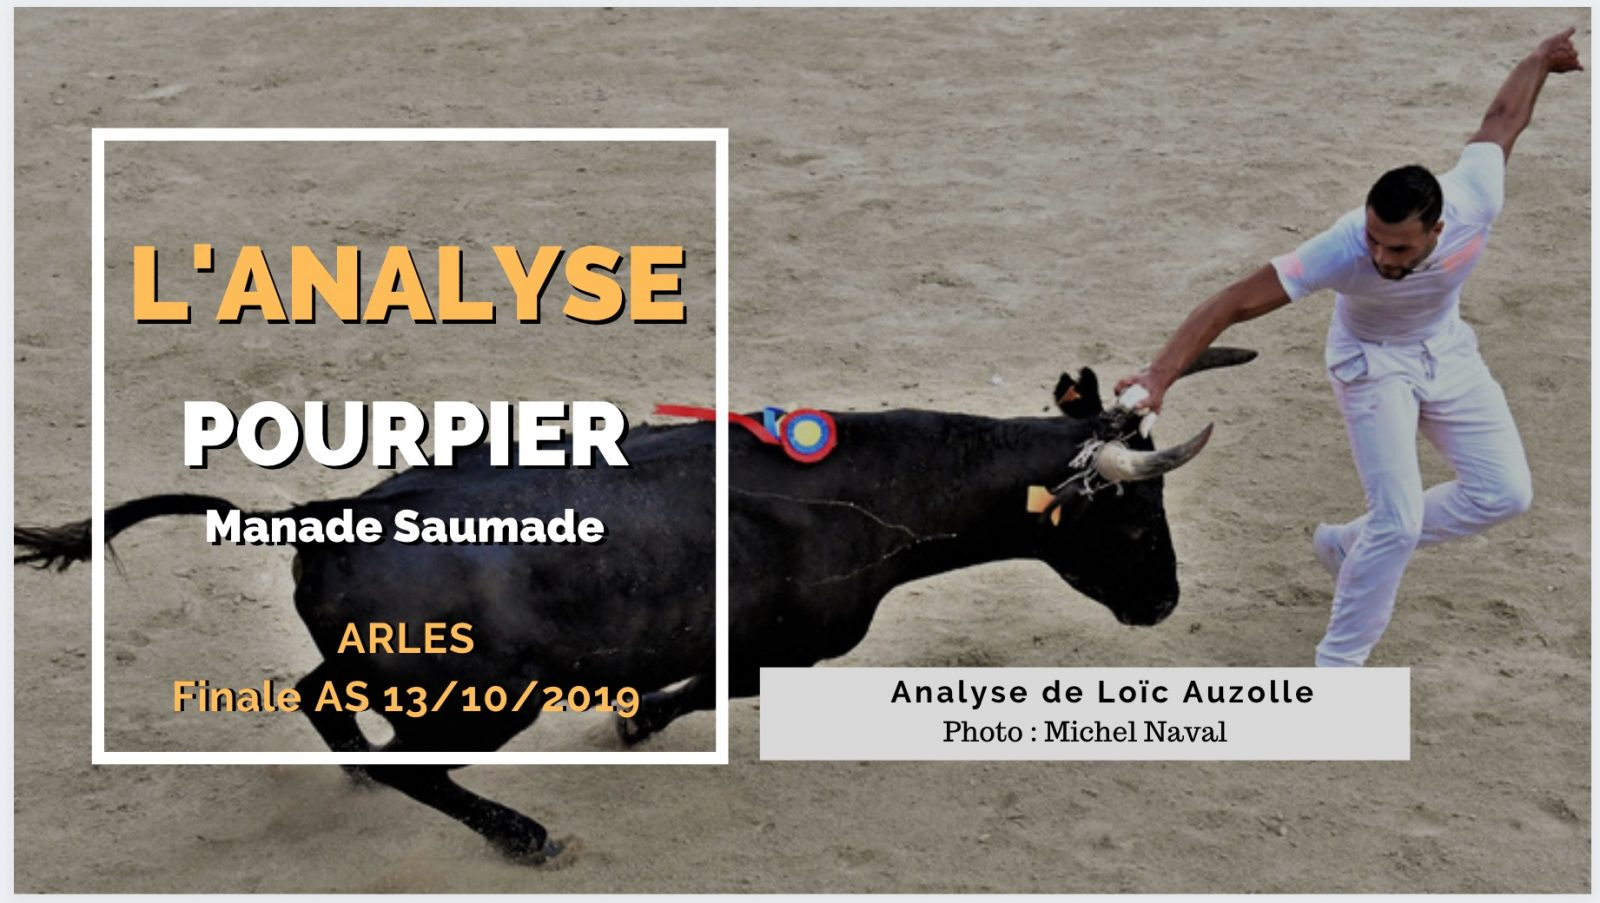 L'ANALYSE – Pourpier (Saumade) – Finale AS Arles 13/10/2019